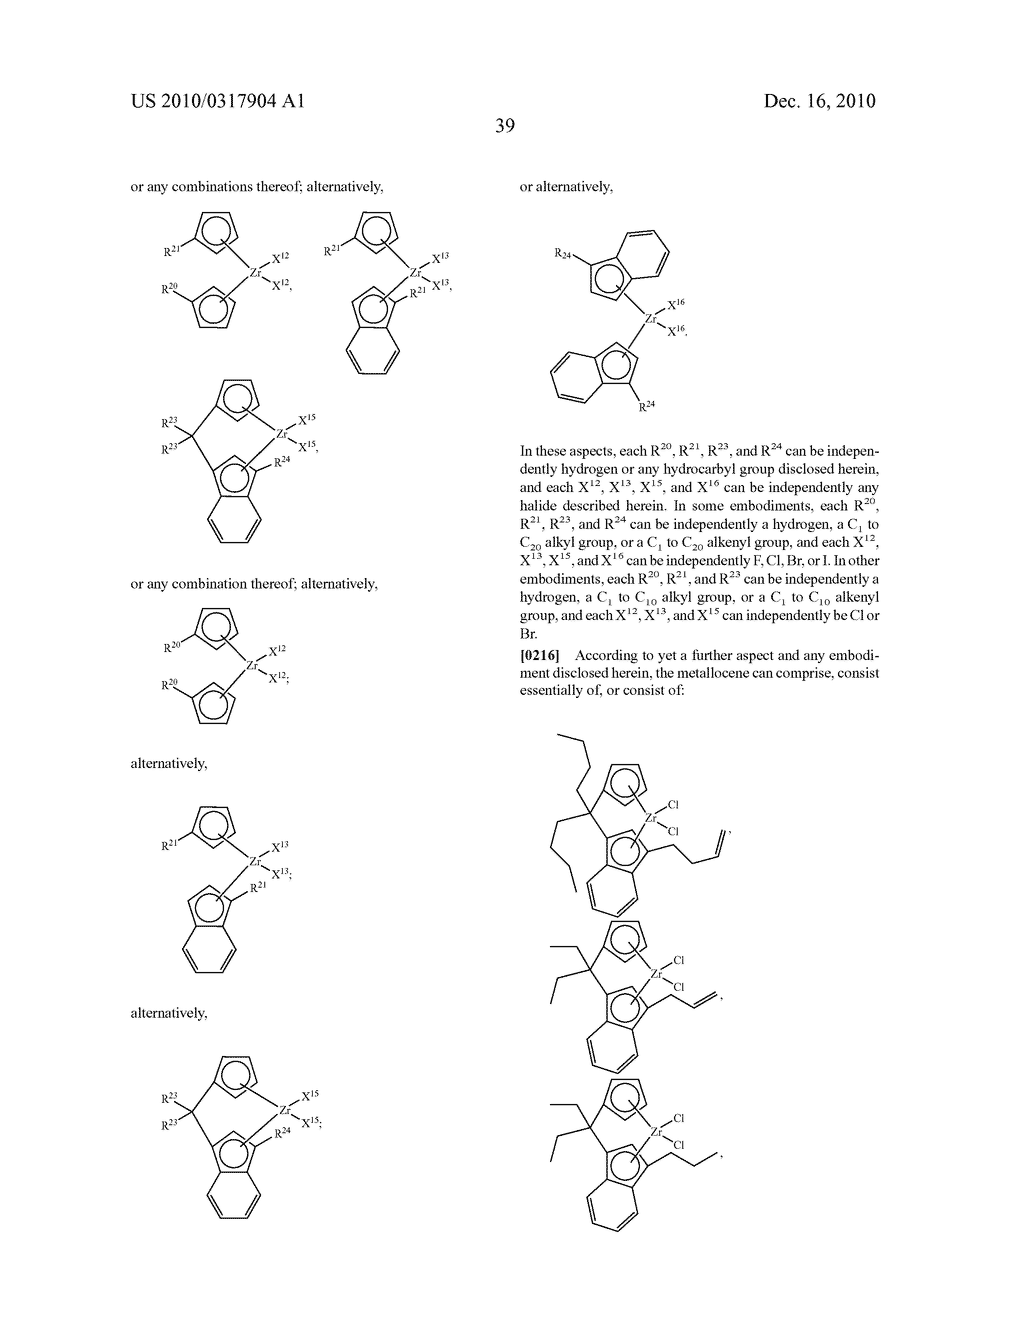 OLIGOMERIZATION OF ALPHA OLEFINS USING METALLOCENE-SSA CATALYST SYSTEMS AND USE OF THE RESULTANT POLYALPHAOLEFINS TO PREPARE LUBRICANT BLENDS - diagram, schematic, and image 51